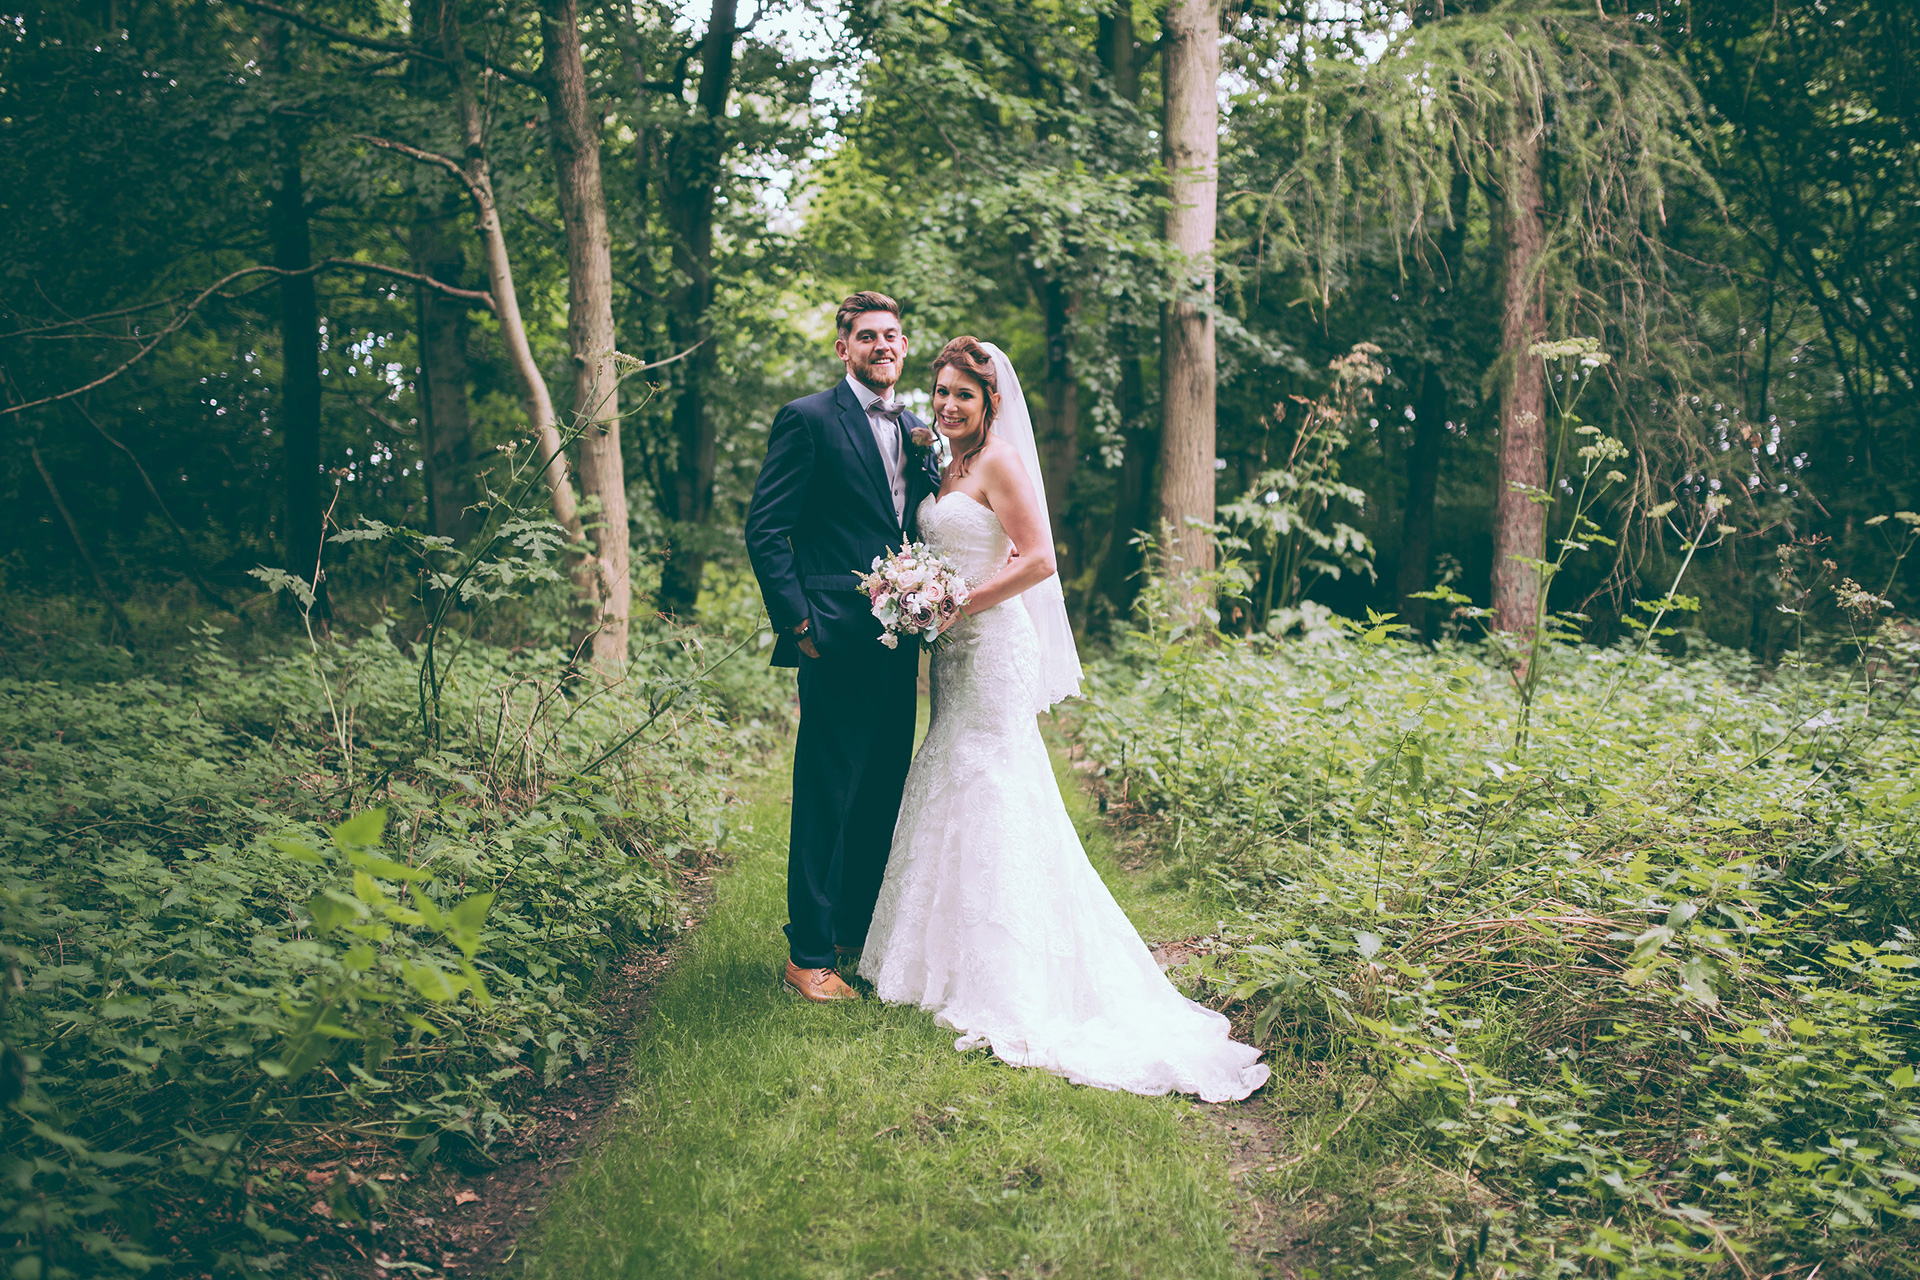 The bride and groom make the most of the woodlands at Bassmead Manor Barns on their wedding day